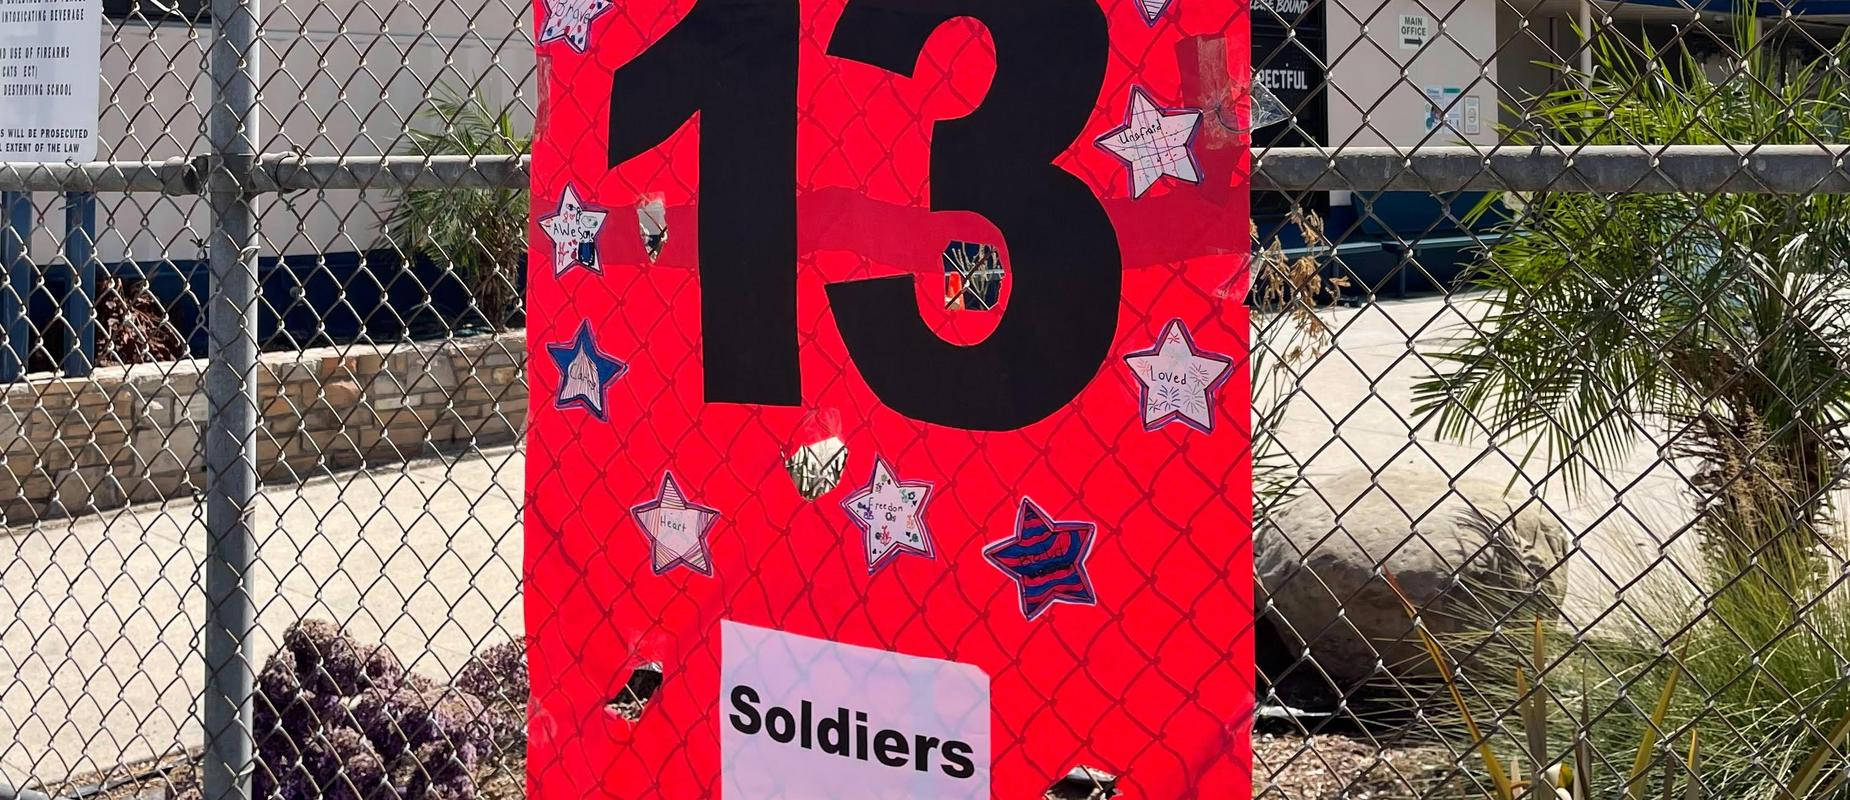 soldiers banner red